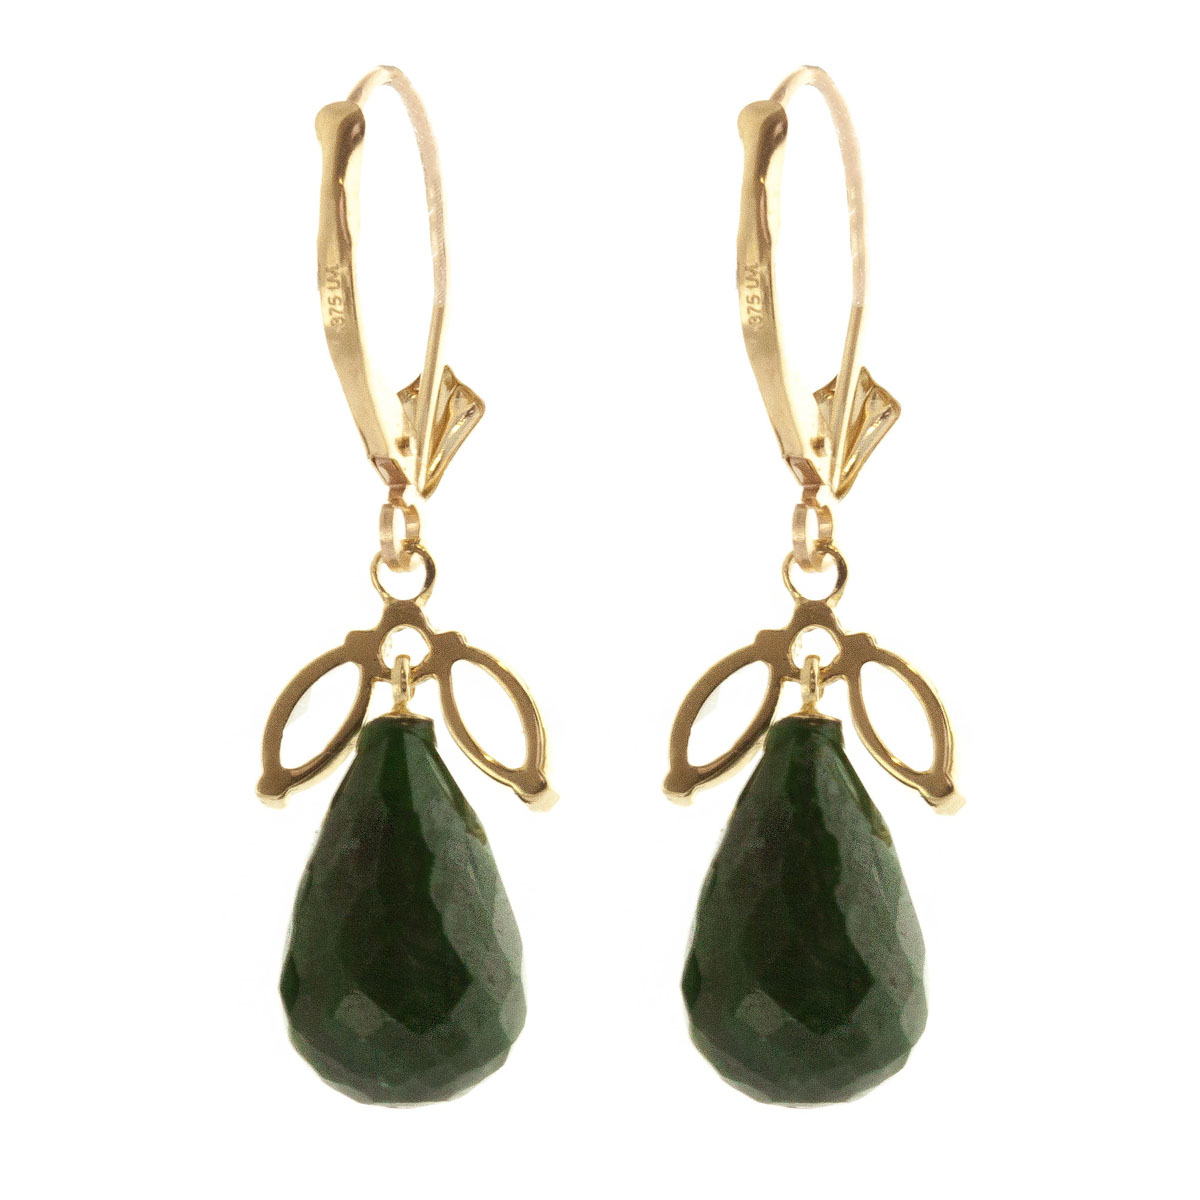 Emerald & White Topaz Snowdrop Earrings in 9ct Gold